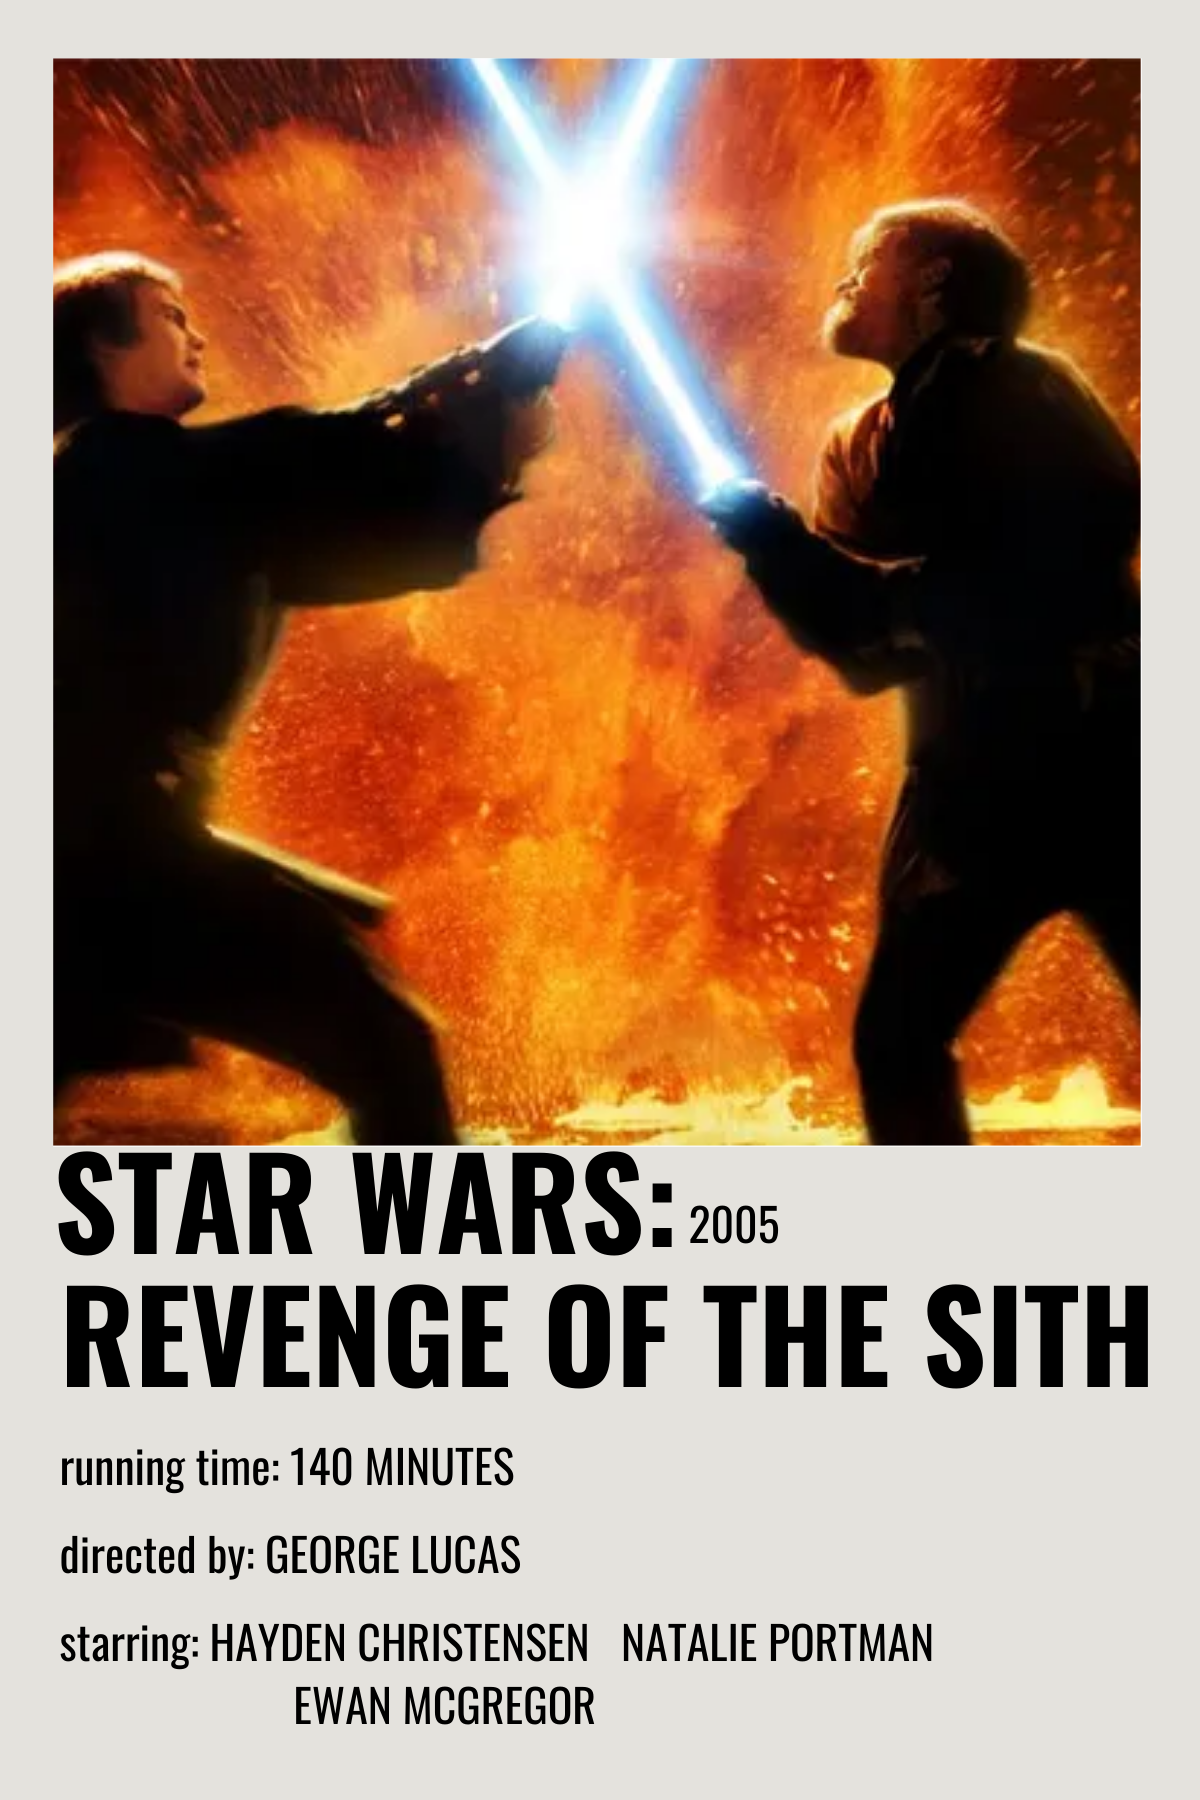 star wars revenge of the sith movie poster